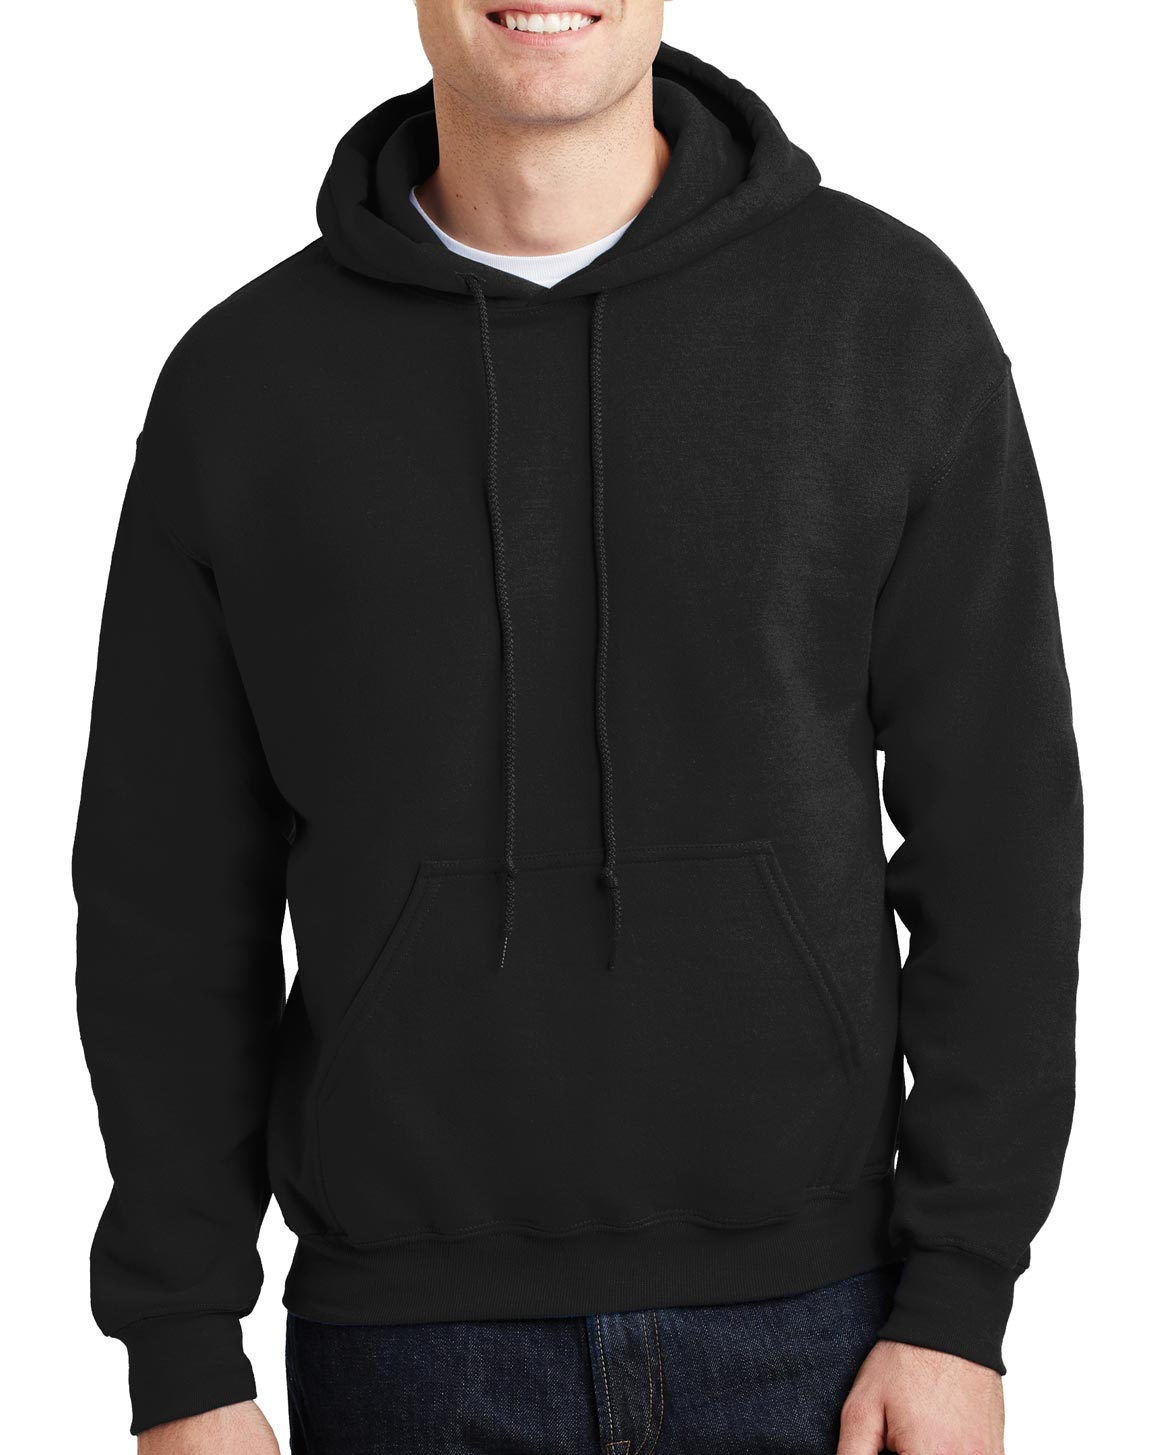 Gildan Adult Heavy Blend™ Hooded Sweatshirt